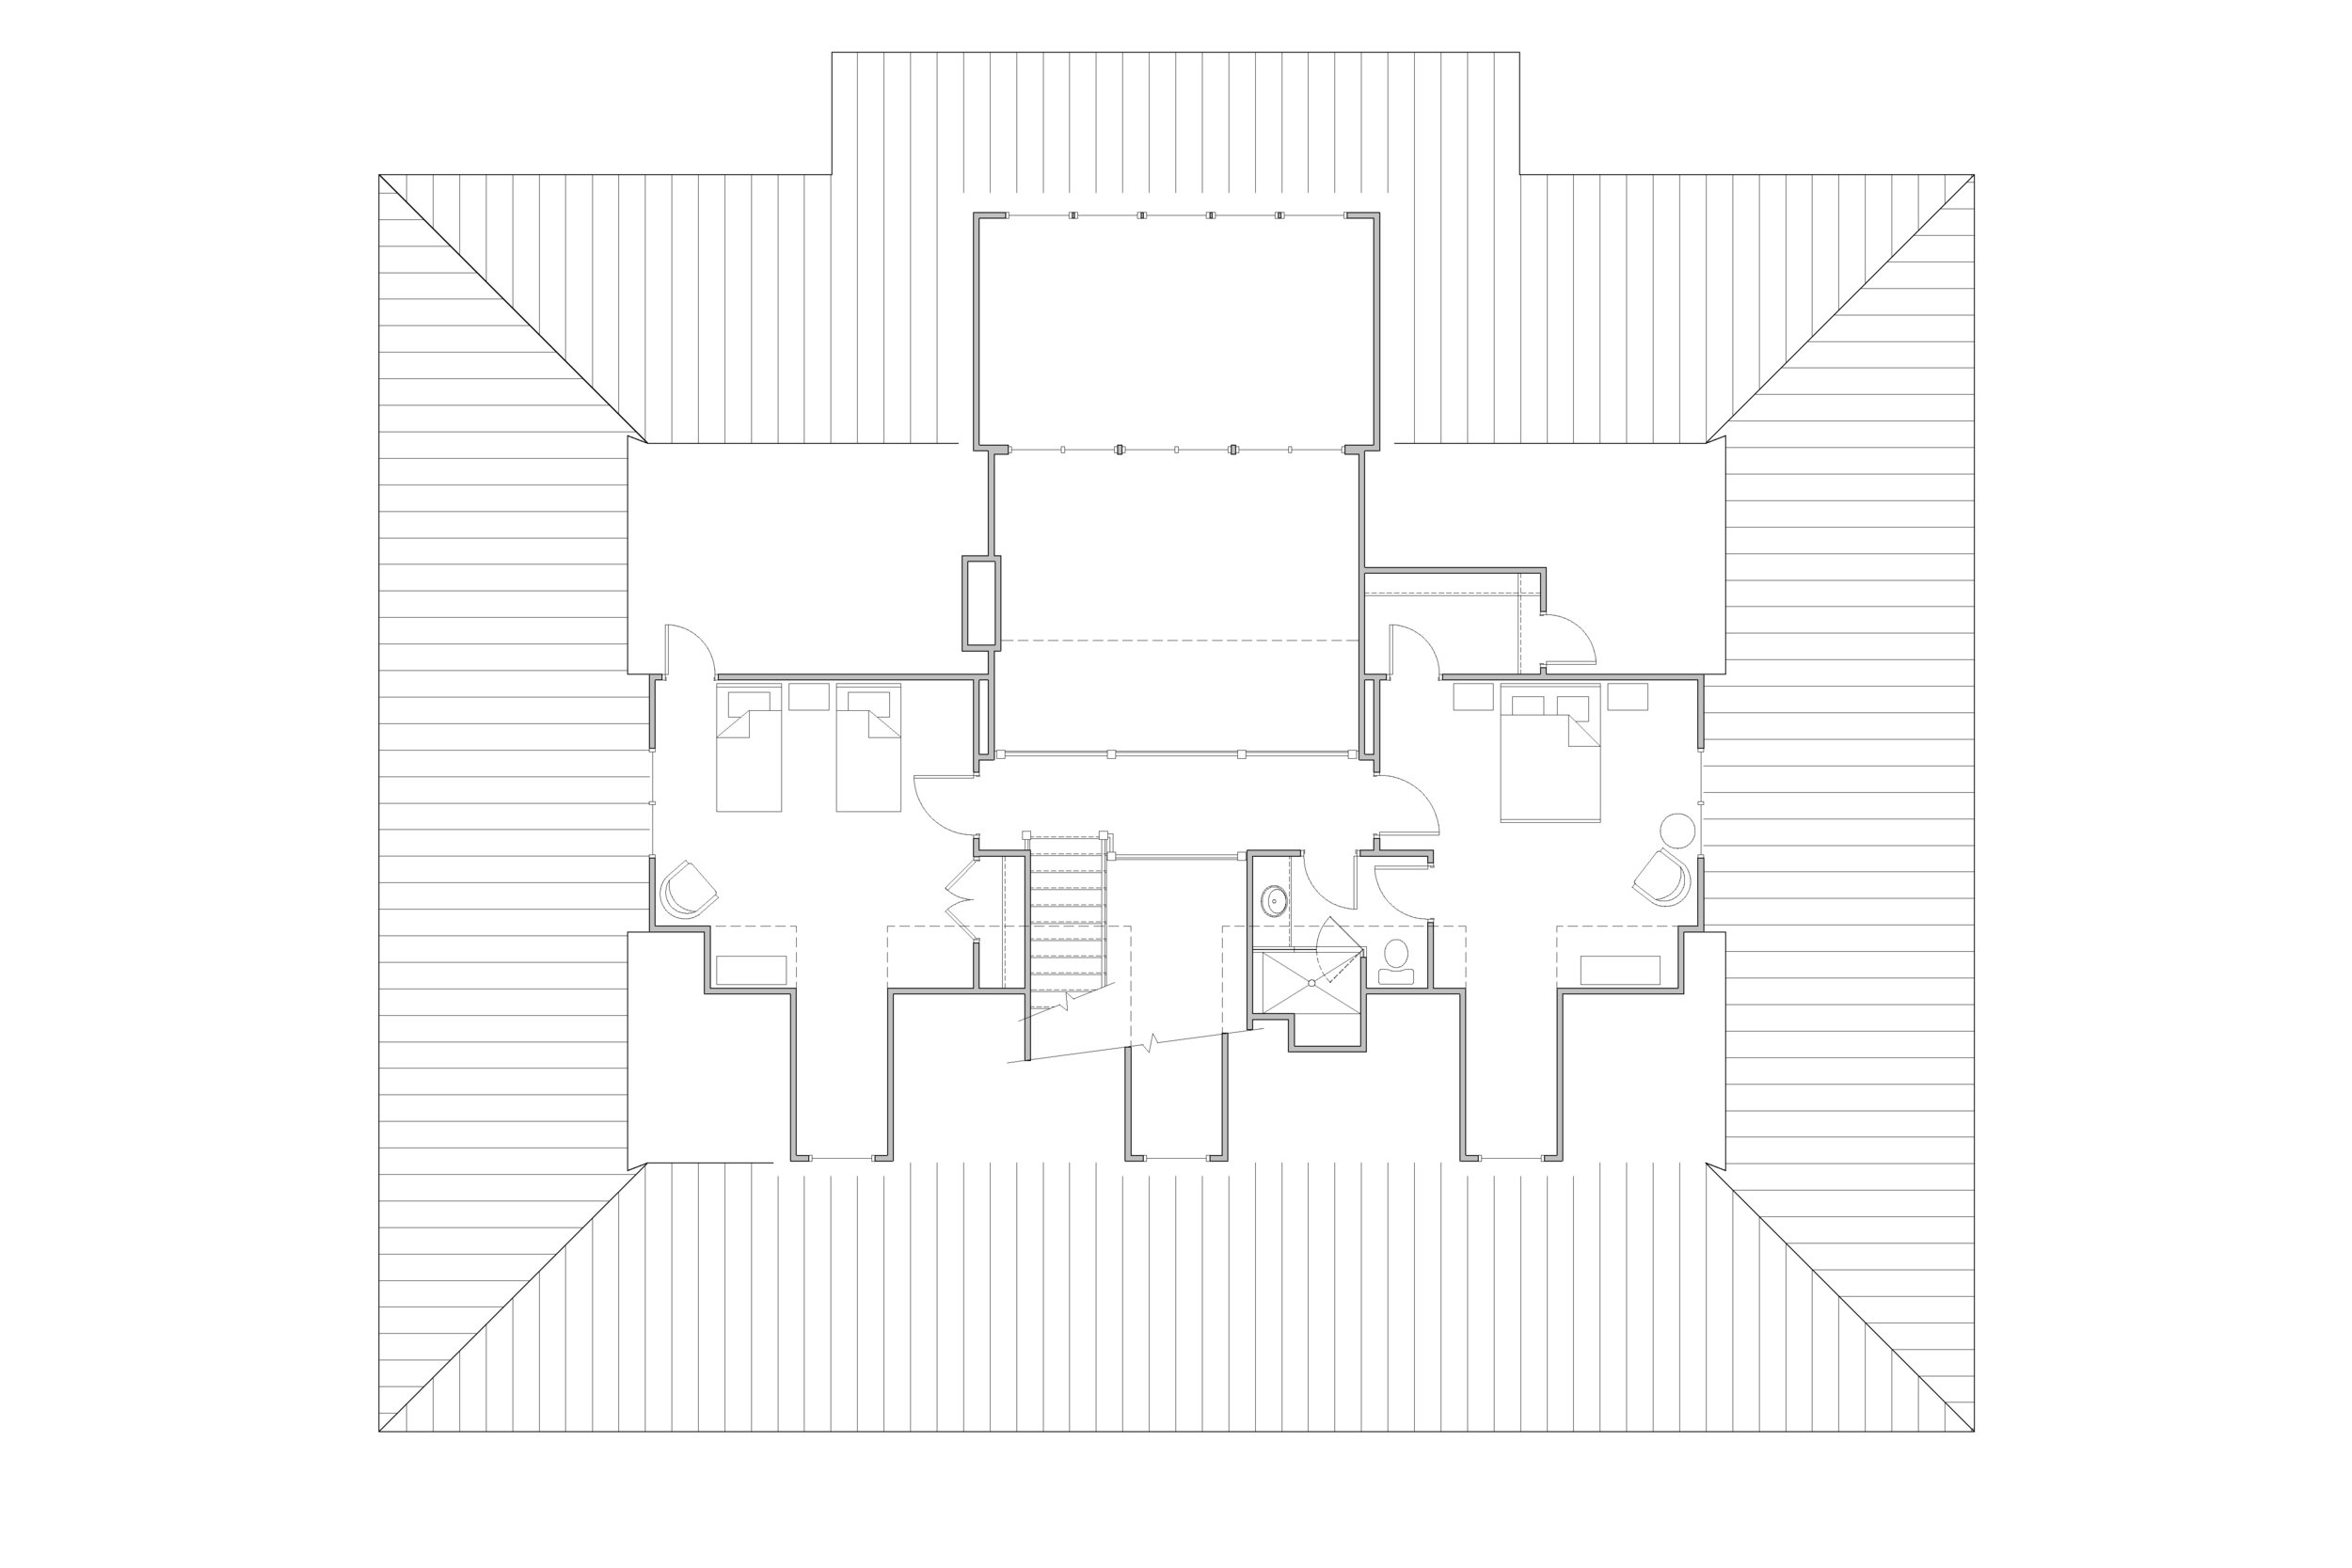 Butler_2nd Floor Plan 24x36.jpg